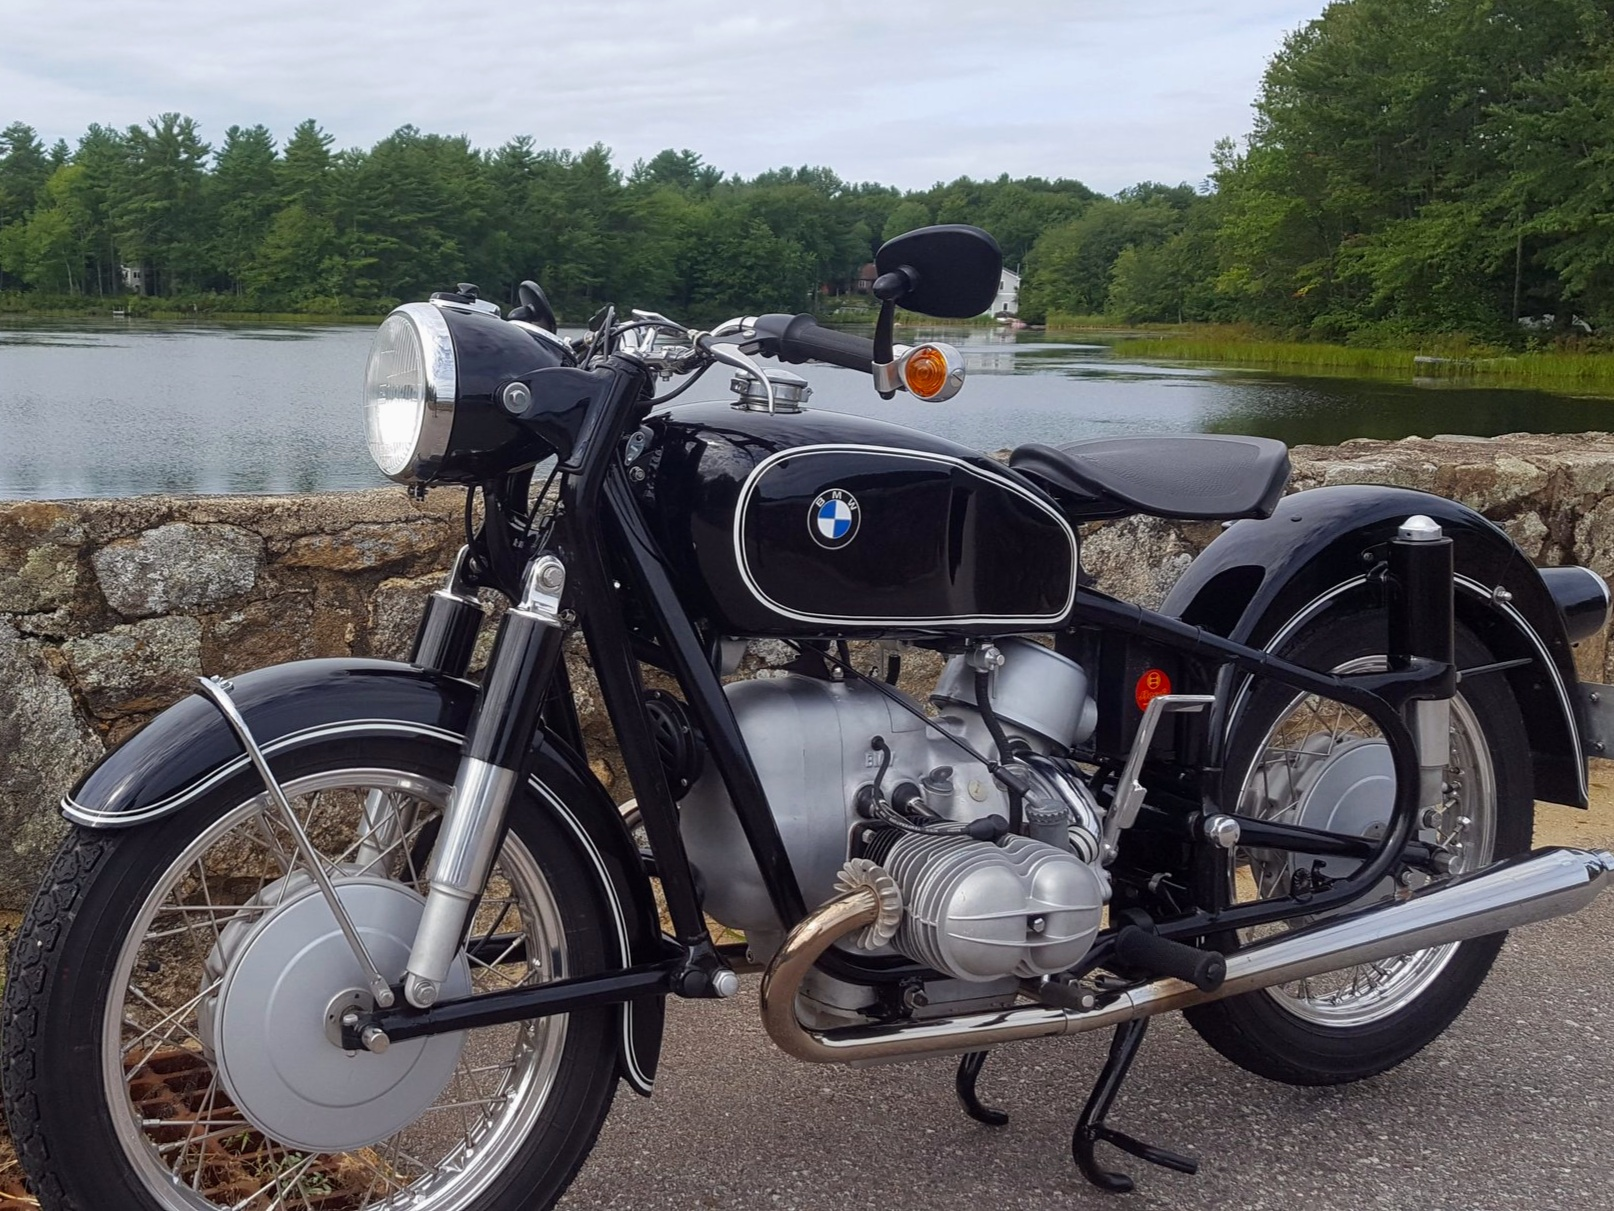 1961 R50S with custom features